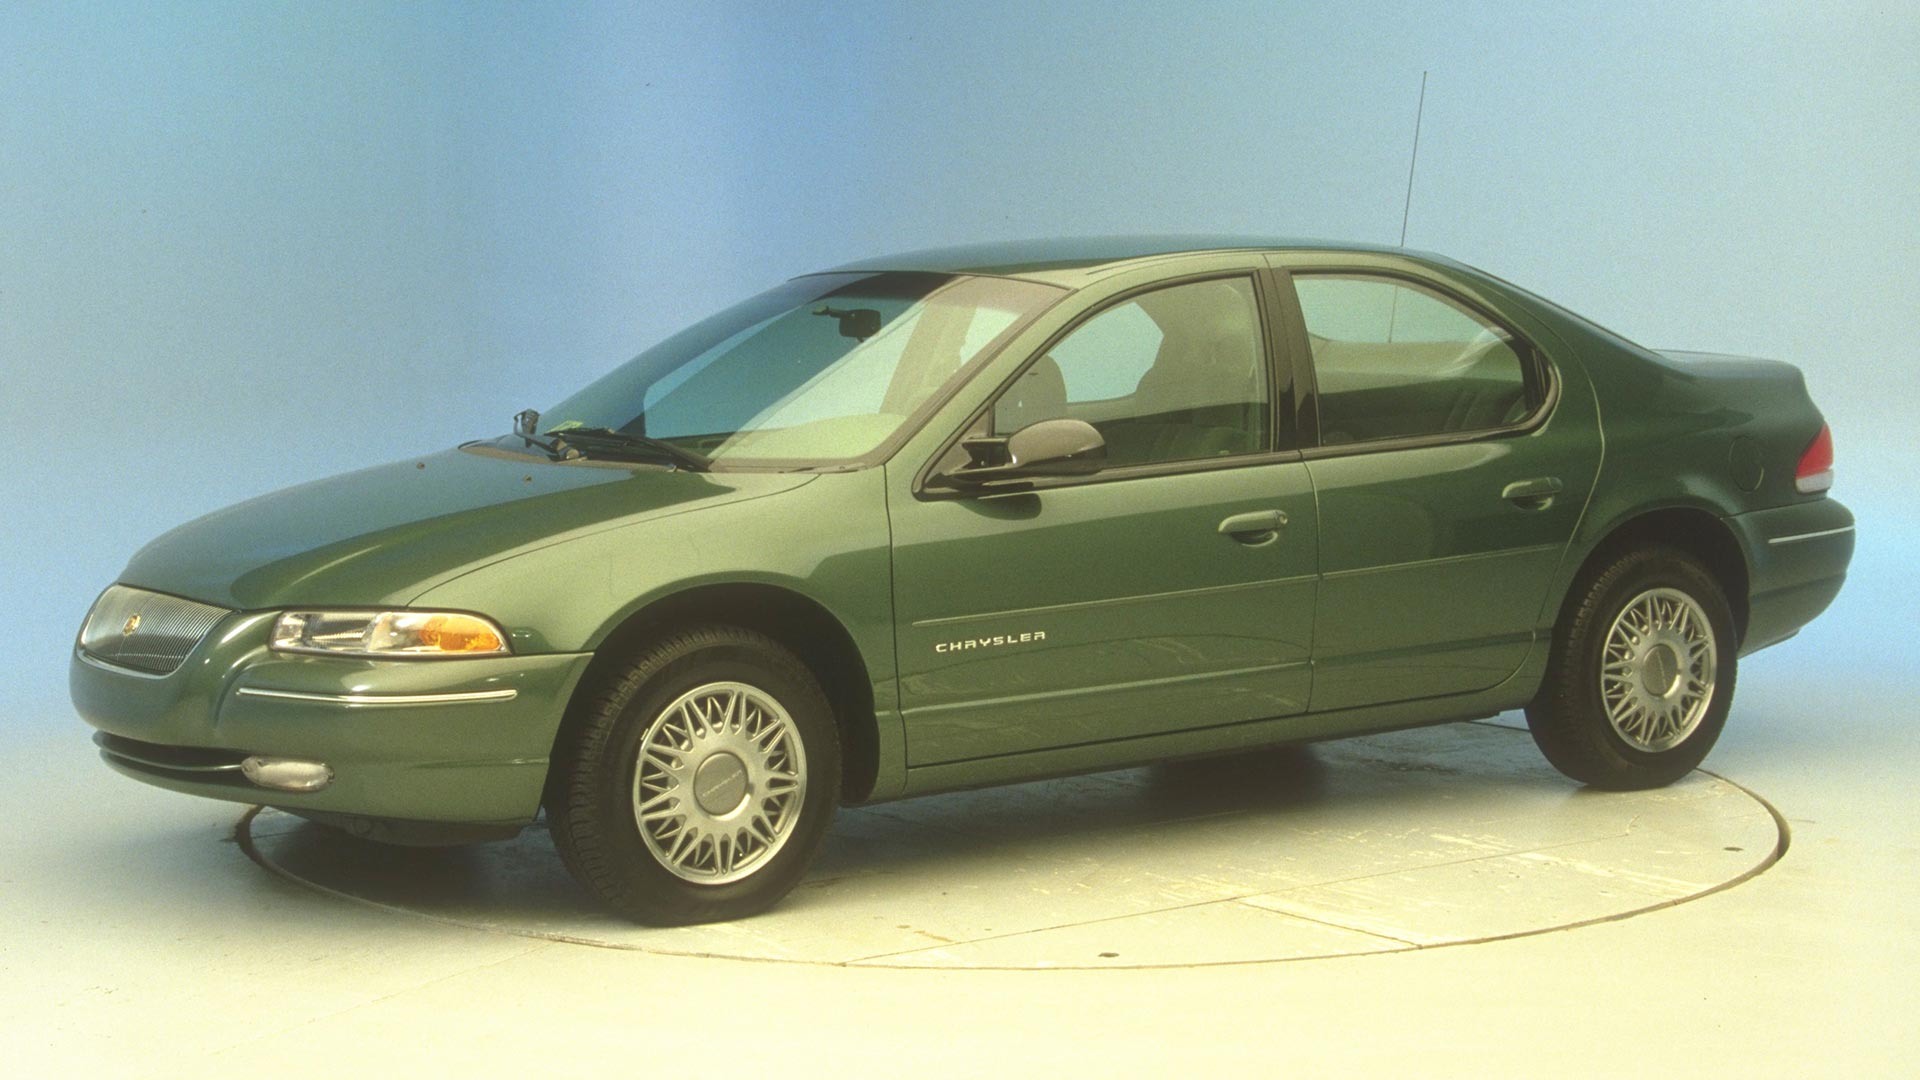 1997 Chrysler Cirrus 4-door sedan